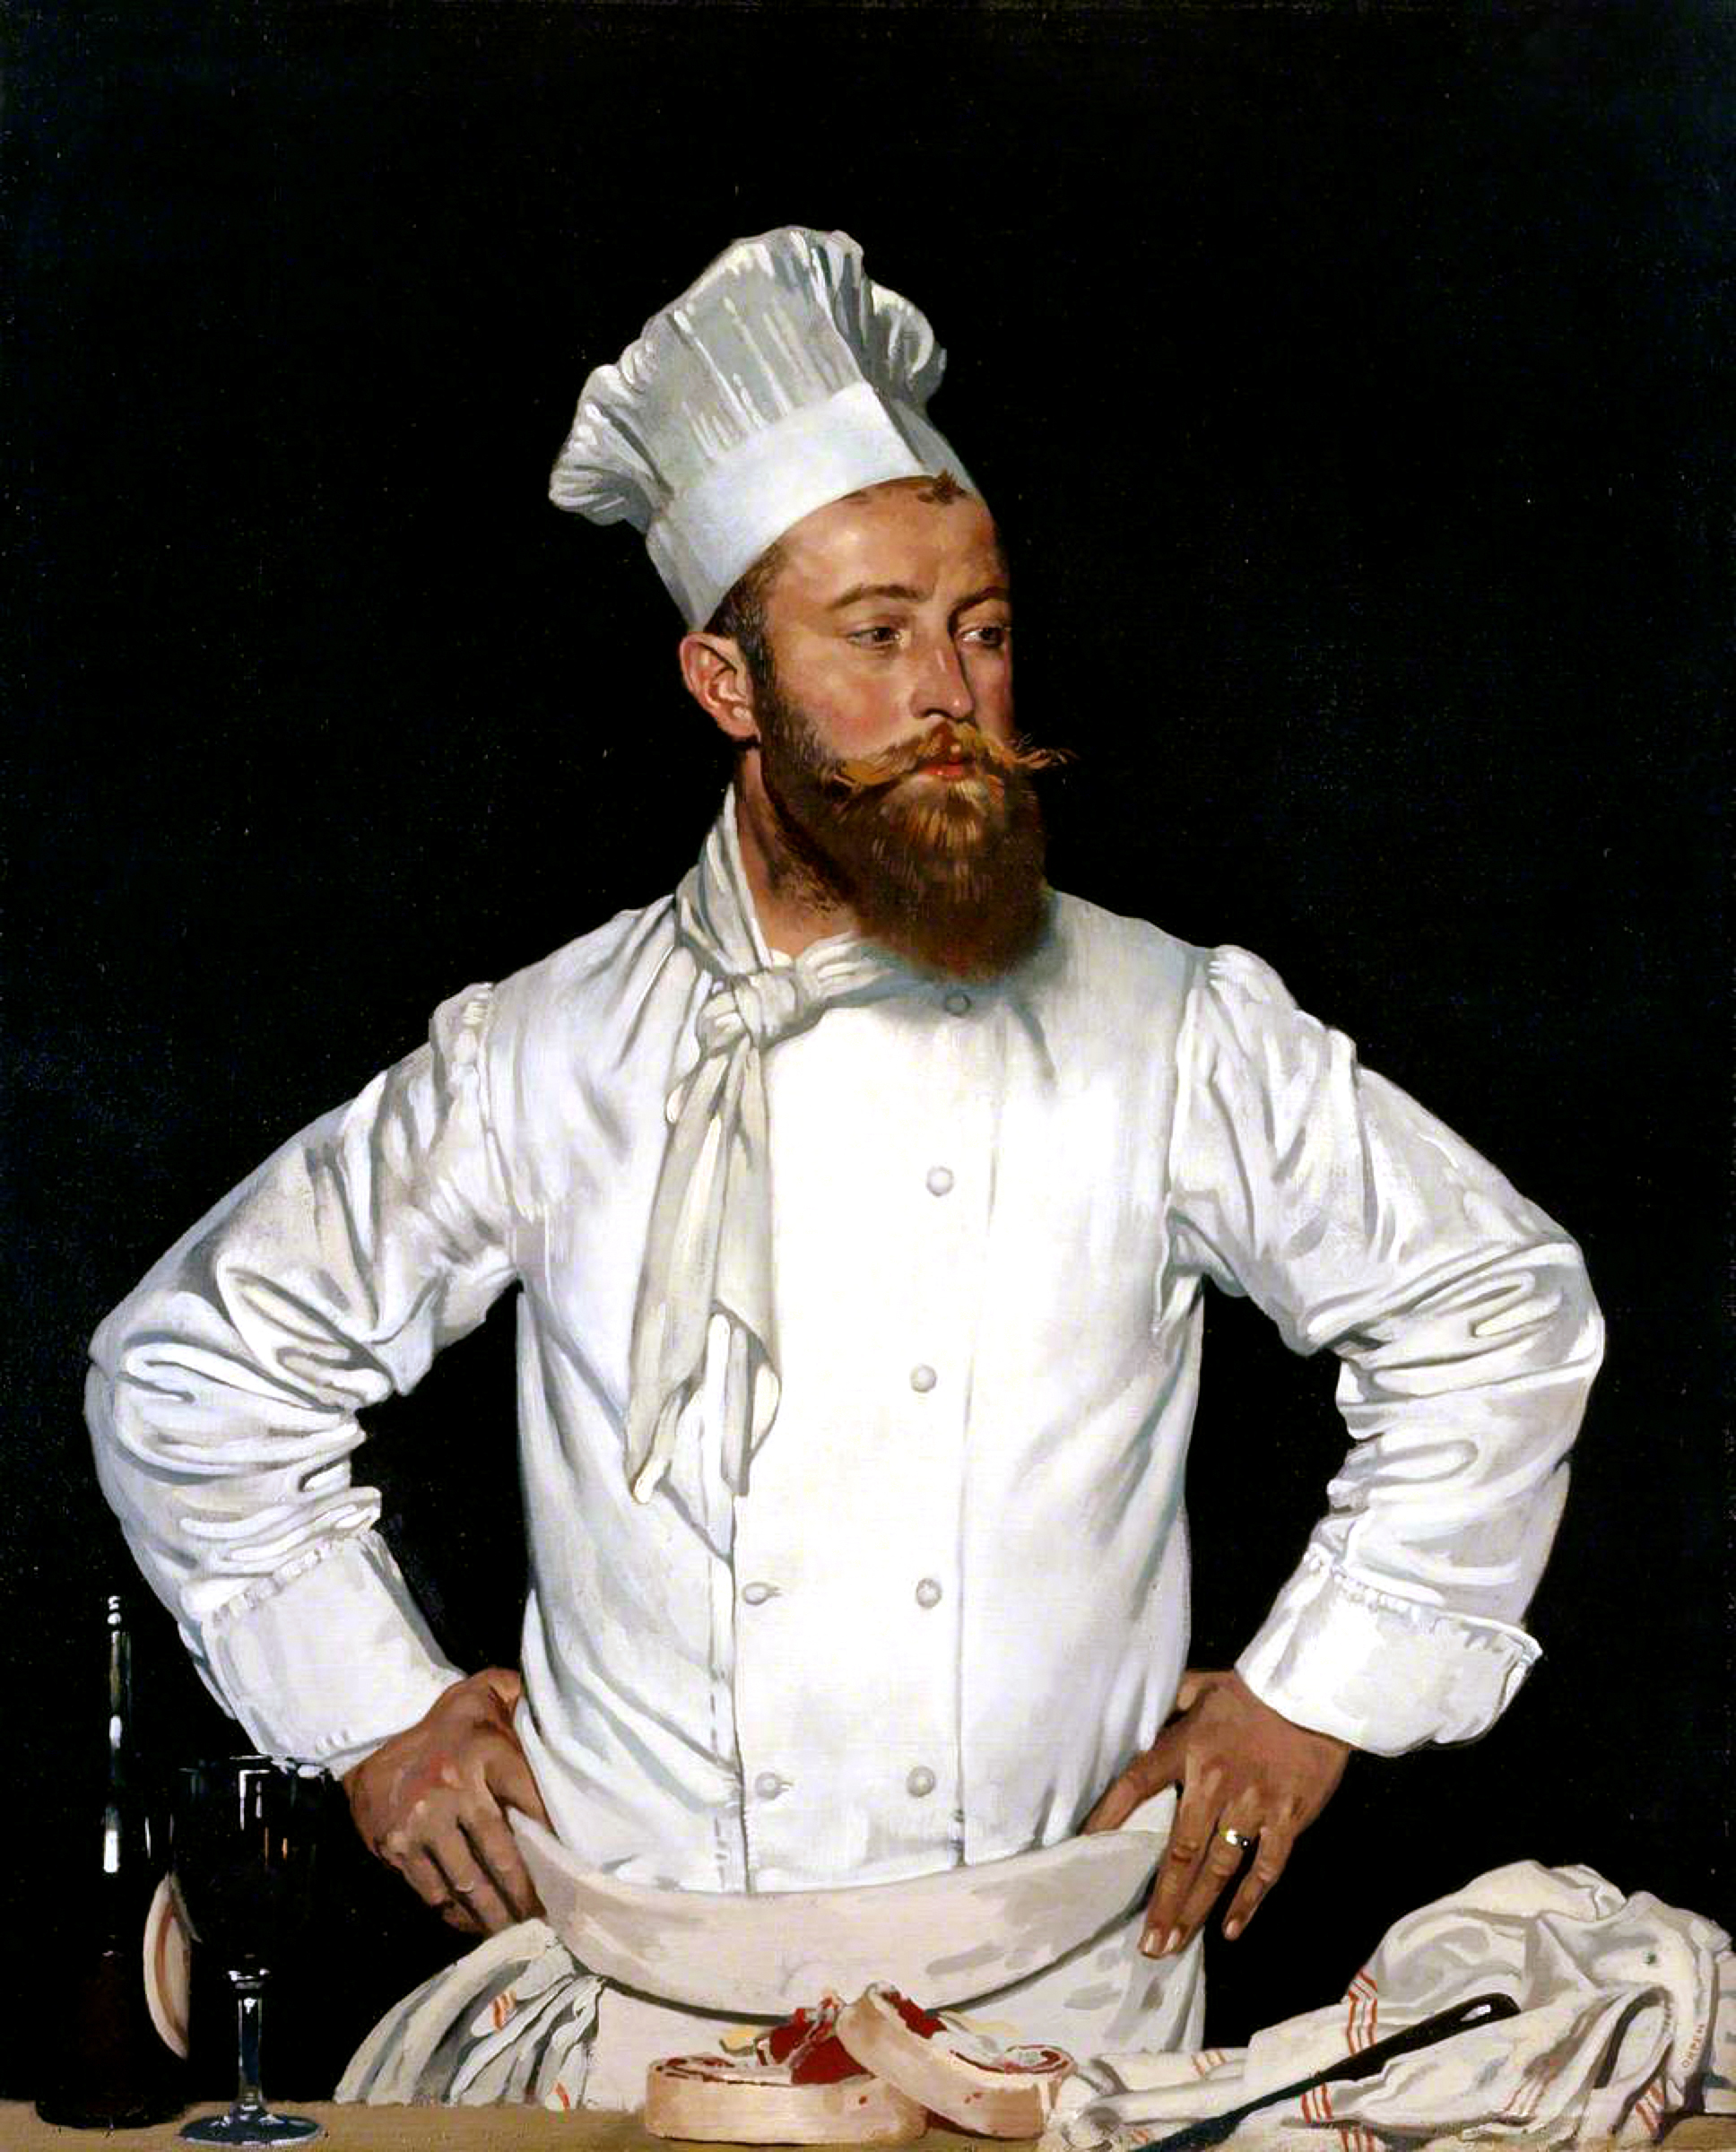 William Orpen Le Chef de l'Hôtel Chatham, Paris